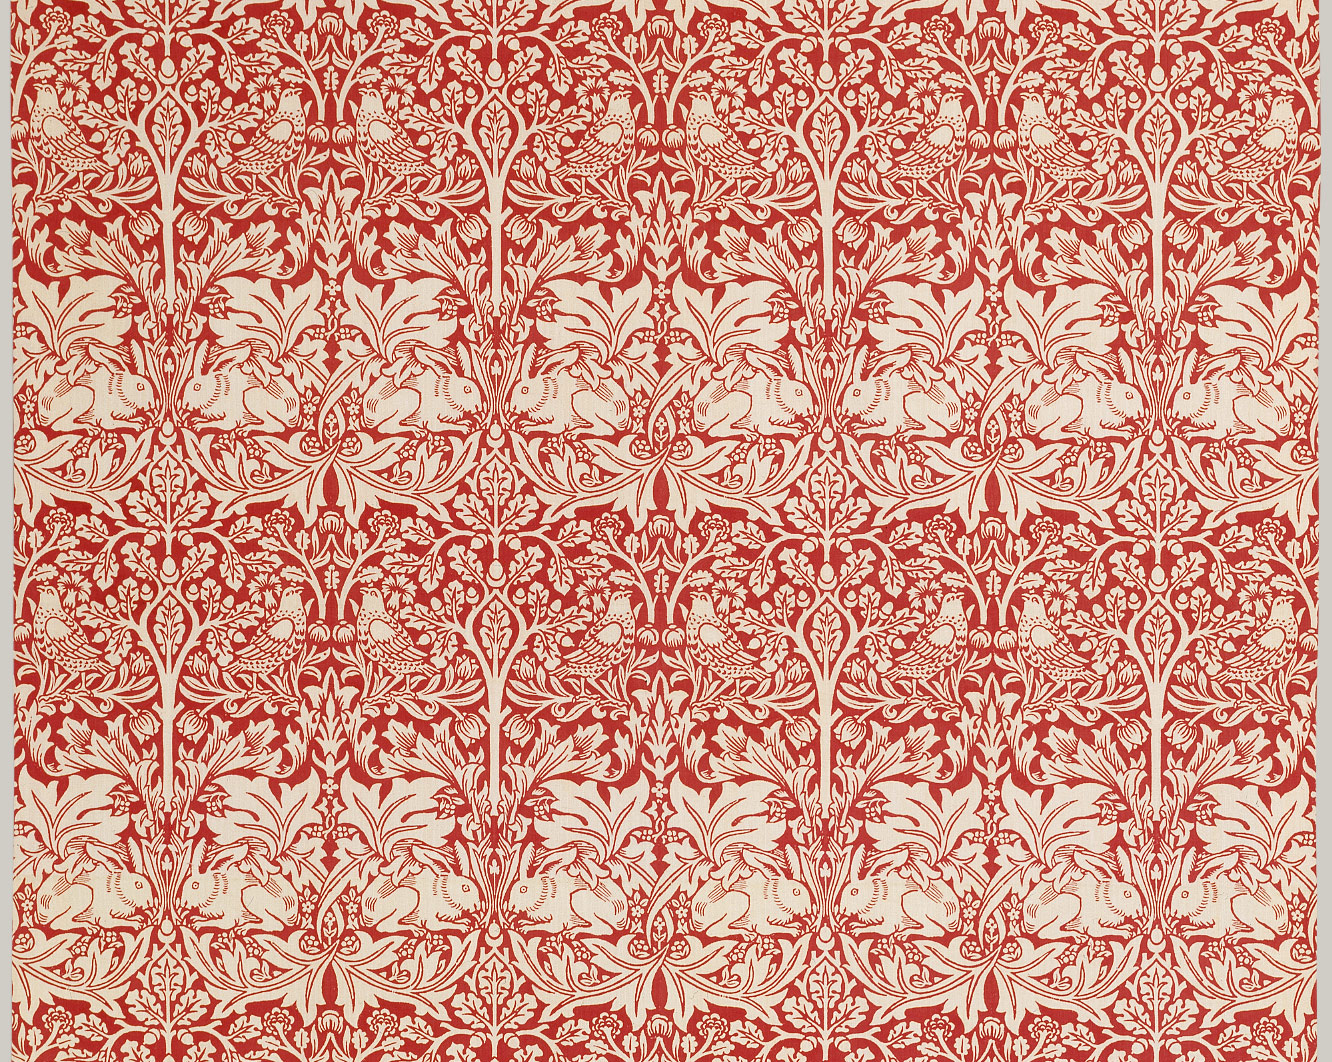 Inspiration: Late 19th century french pattern